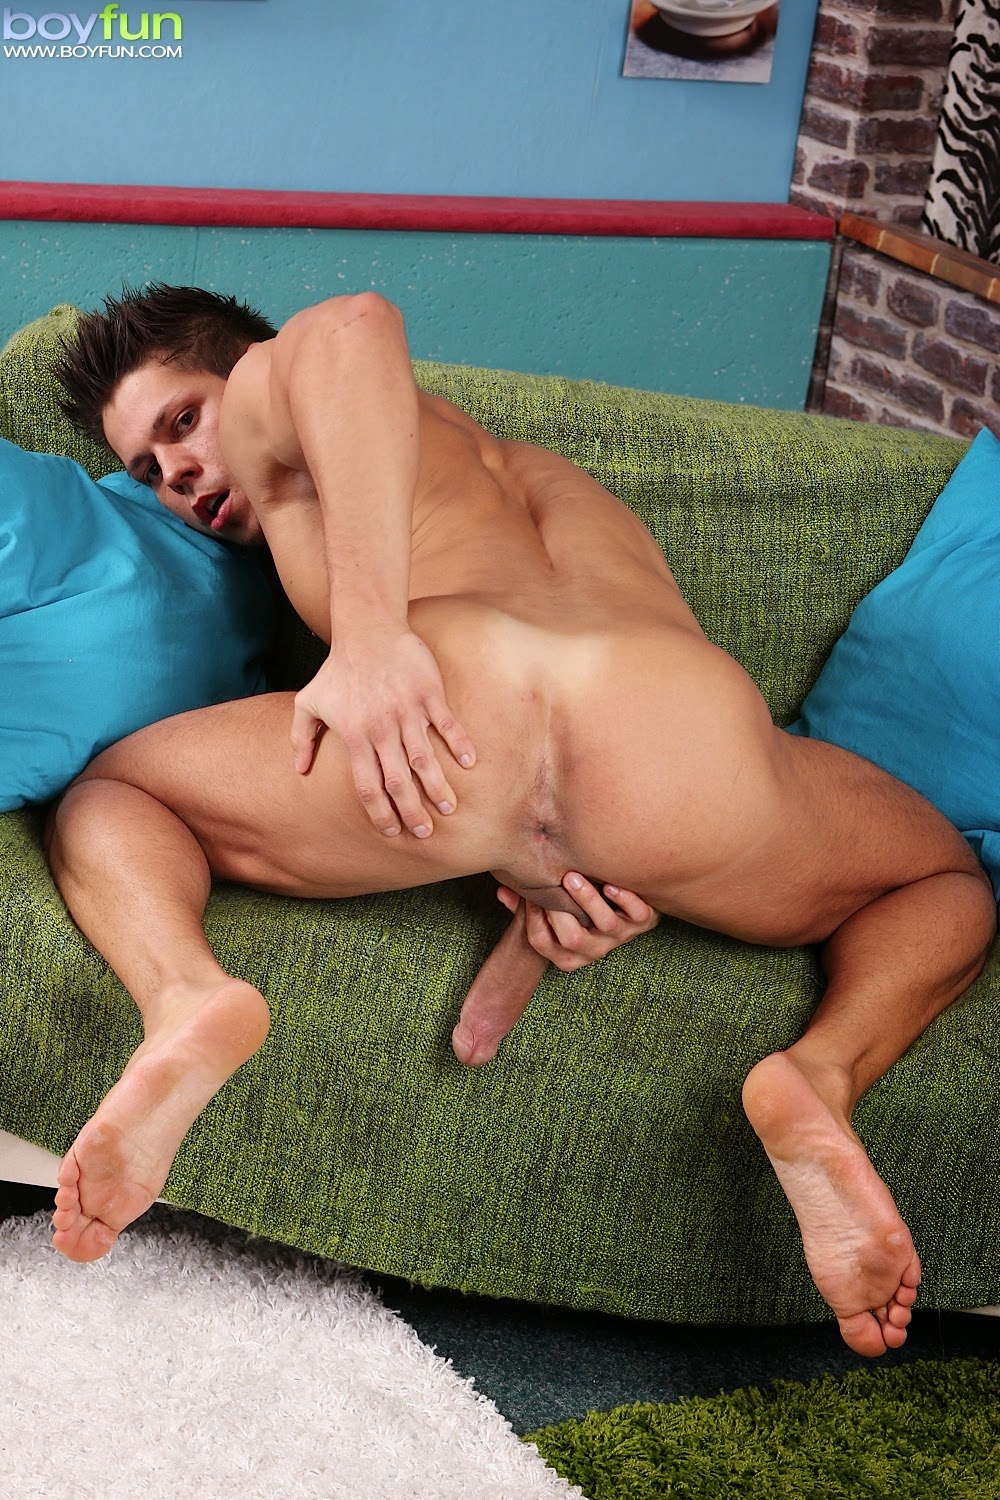 Spy Classmate Over Stall Hot Straight Guy Jerks And Cums